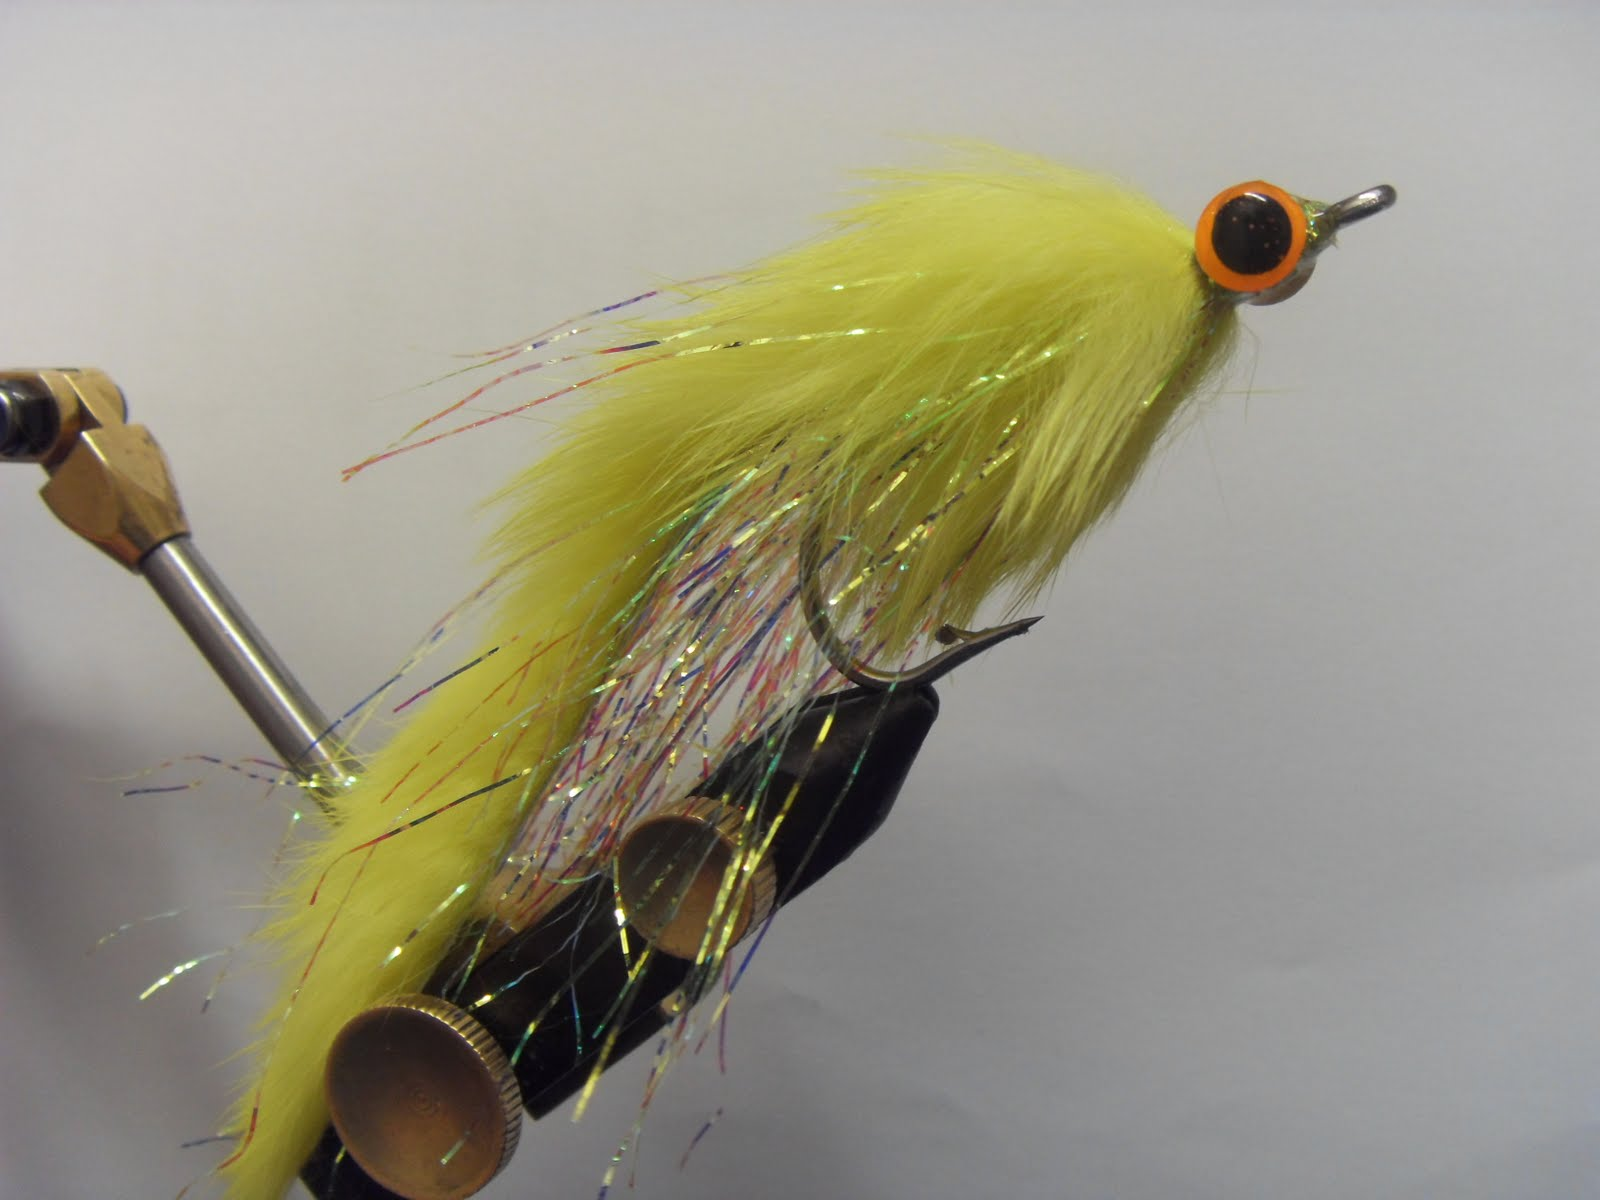 Pike and predator fishing flies bunny bugs for Pike fly fishing